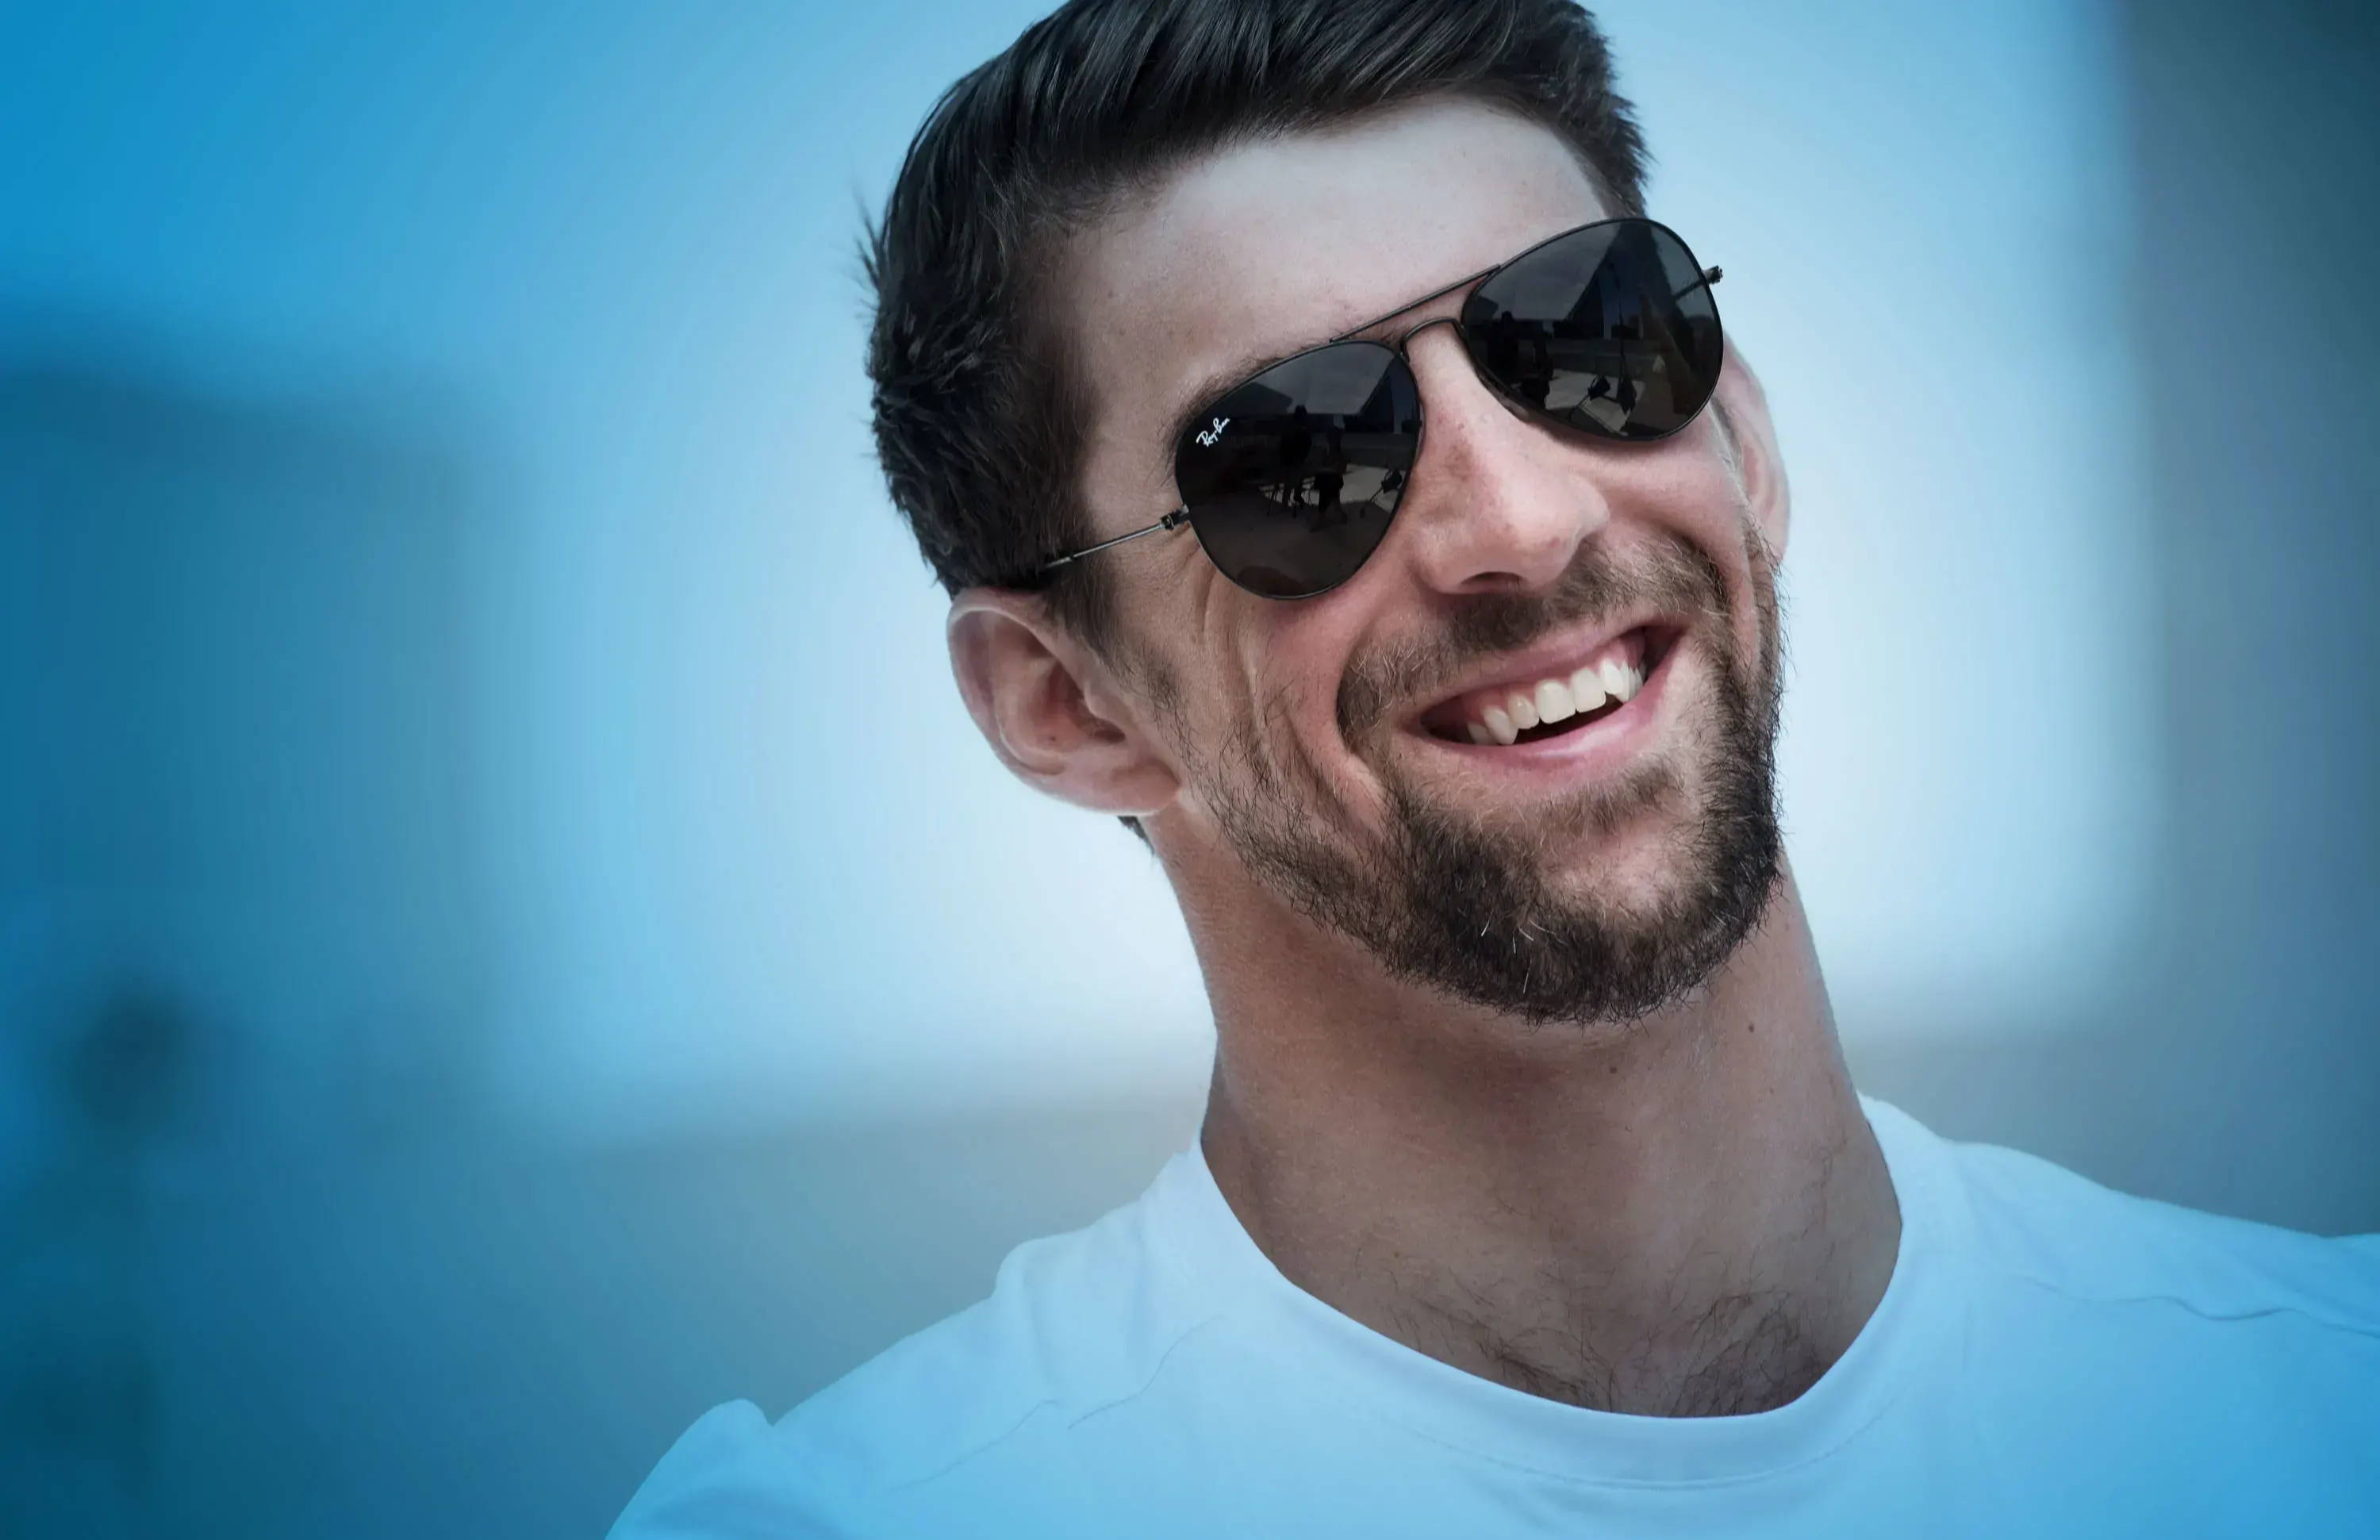 Michael phelps smiling wearing glasses announcing the Phelps swimming gear test team